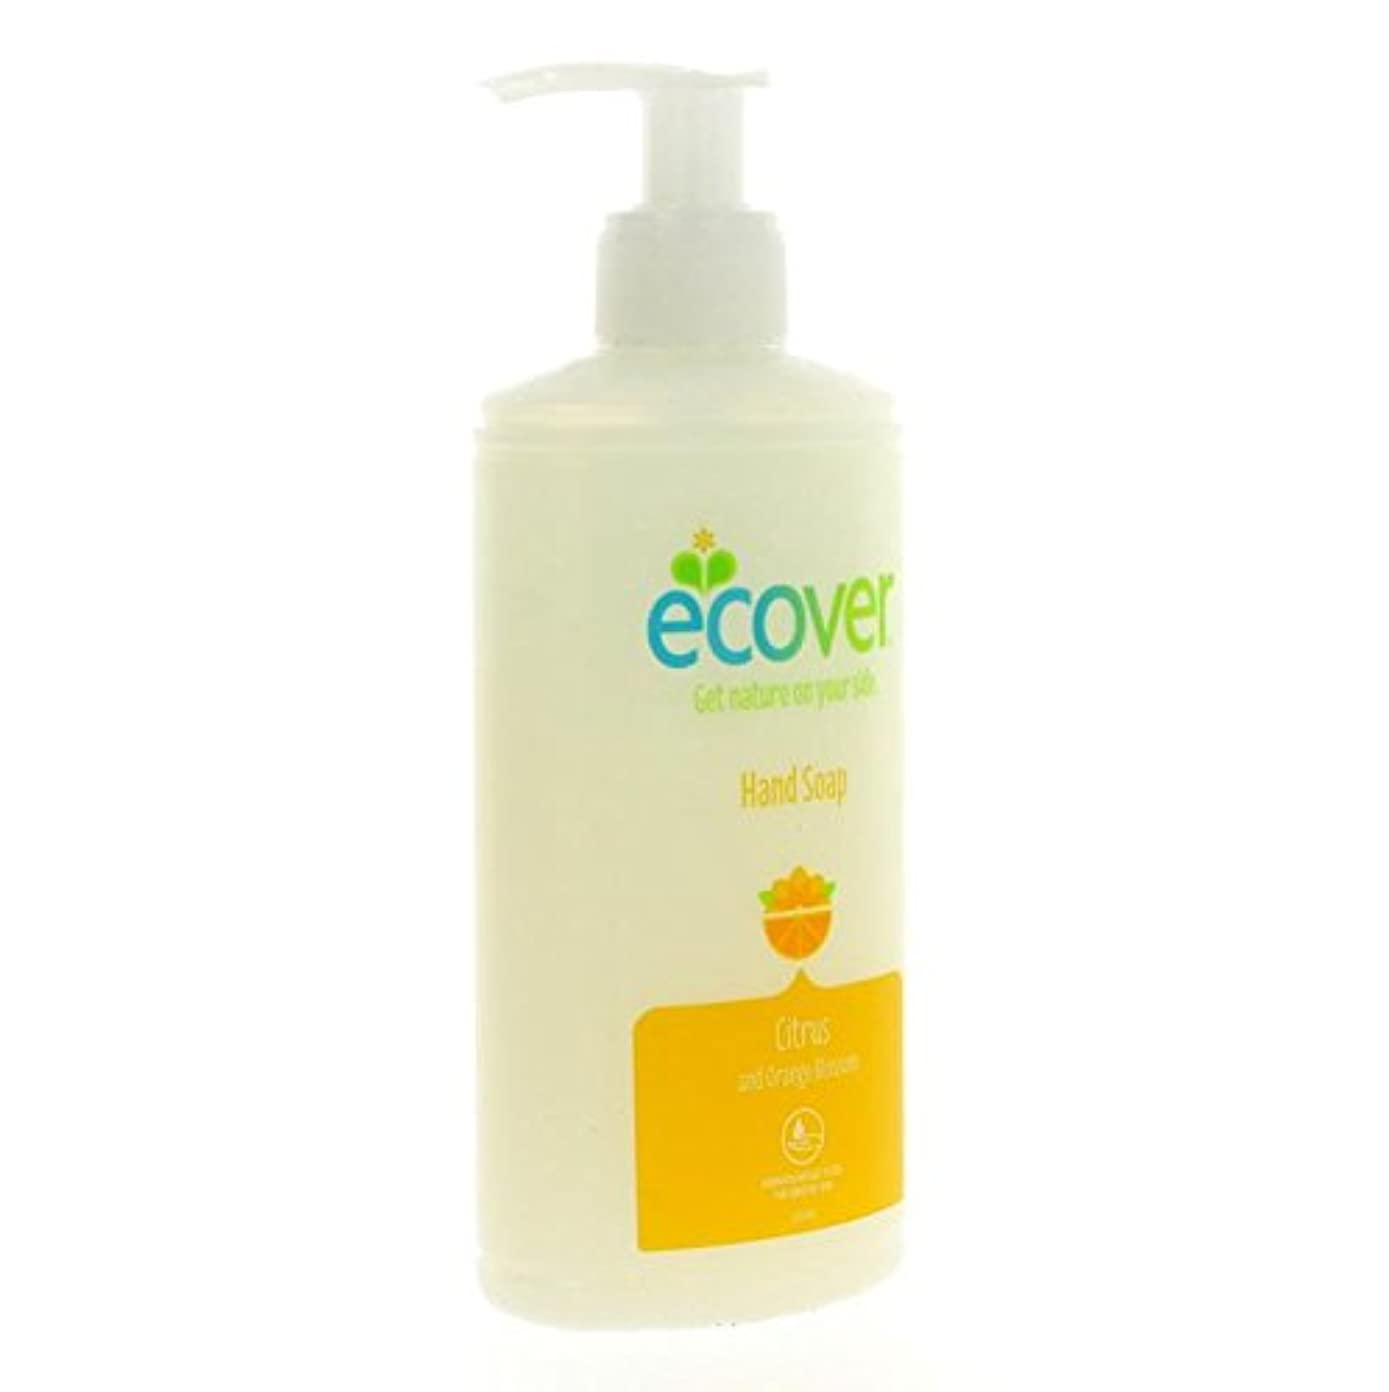 振り子本物のアクセスできないEcover - Hand Soap - Citrus and Orange Blossom - 250ml (Case of 6)